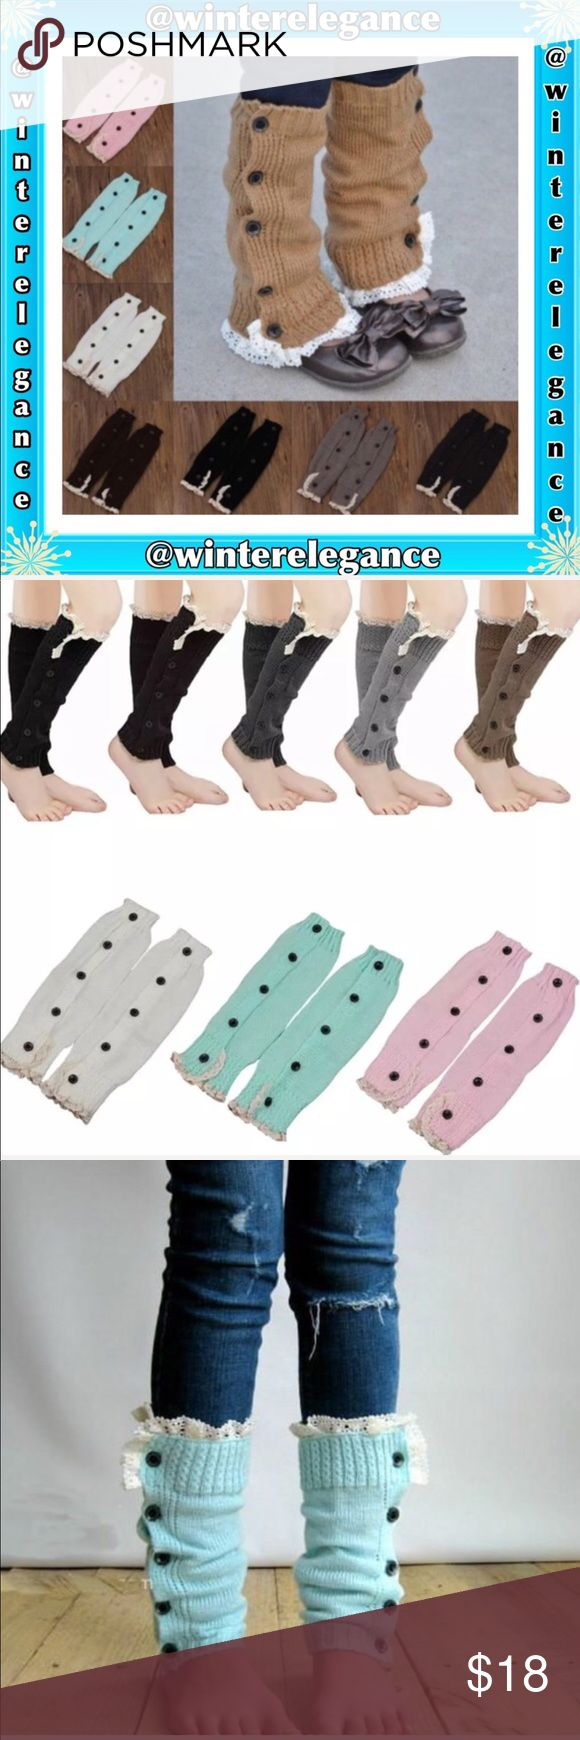 Leg Warmers Knitted Button Boot 100% Brand New And High quality ALL COLORS ARE AVAILABLE  Material: Acrylic  8 colors to choose :  Dark Gray, Pink, Black, Light Gray, White, Coffee, Khaki and Lake Blue  Length:32.5cm Width: 9.5cm.               ❗️Children's size up to Teens❗️  PRICE IS FIRM UNLESS BUNDLED  Package Includes 1 pair of Petite leg warmers ( Not Recommended for large legs ) Winter Elegance Accessories Hosiery & Socks